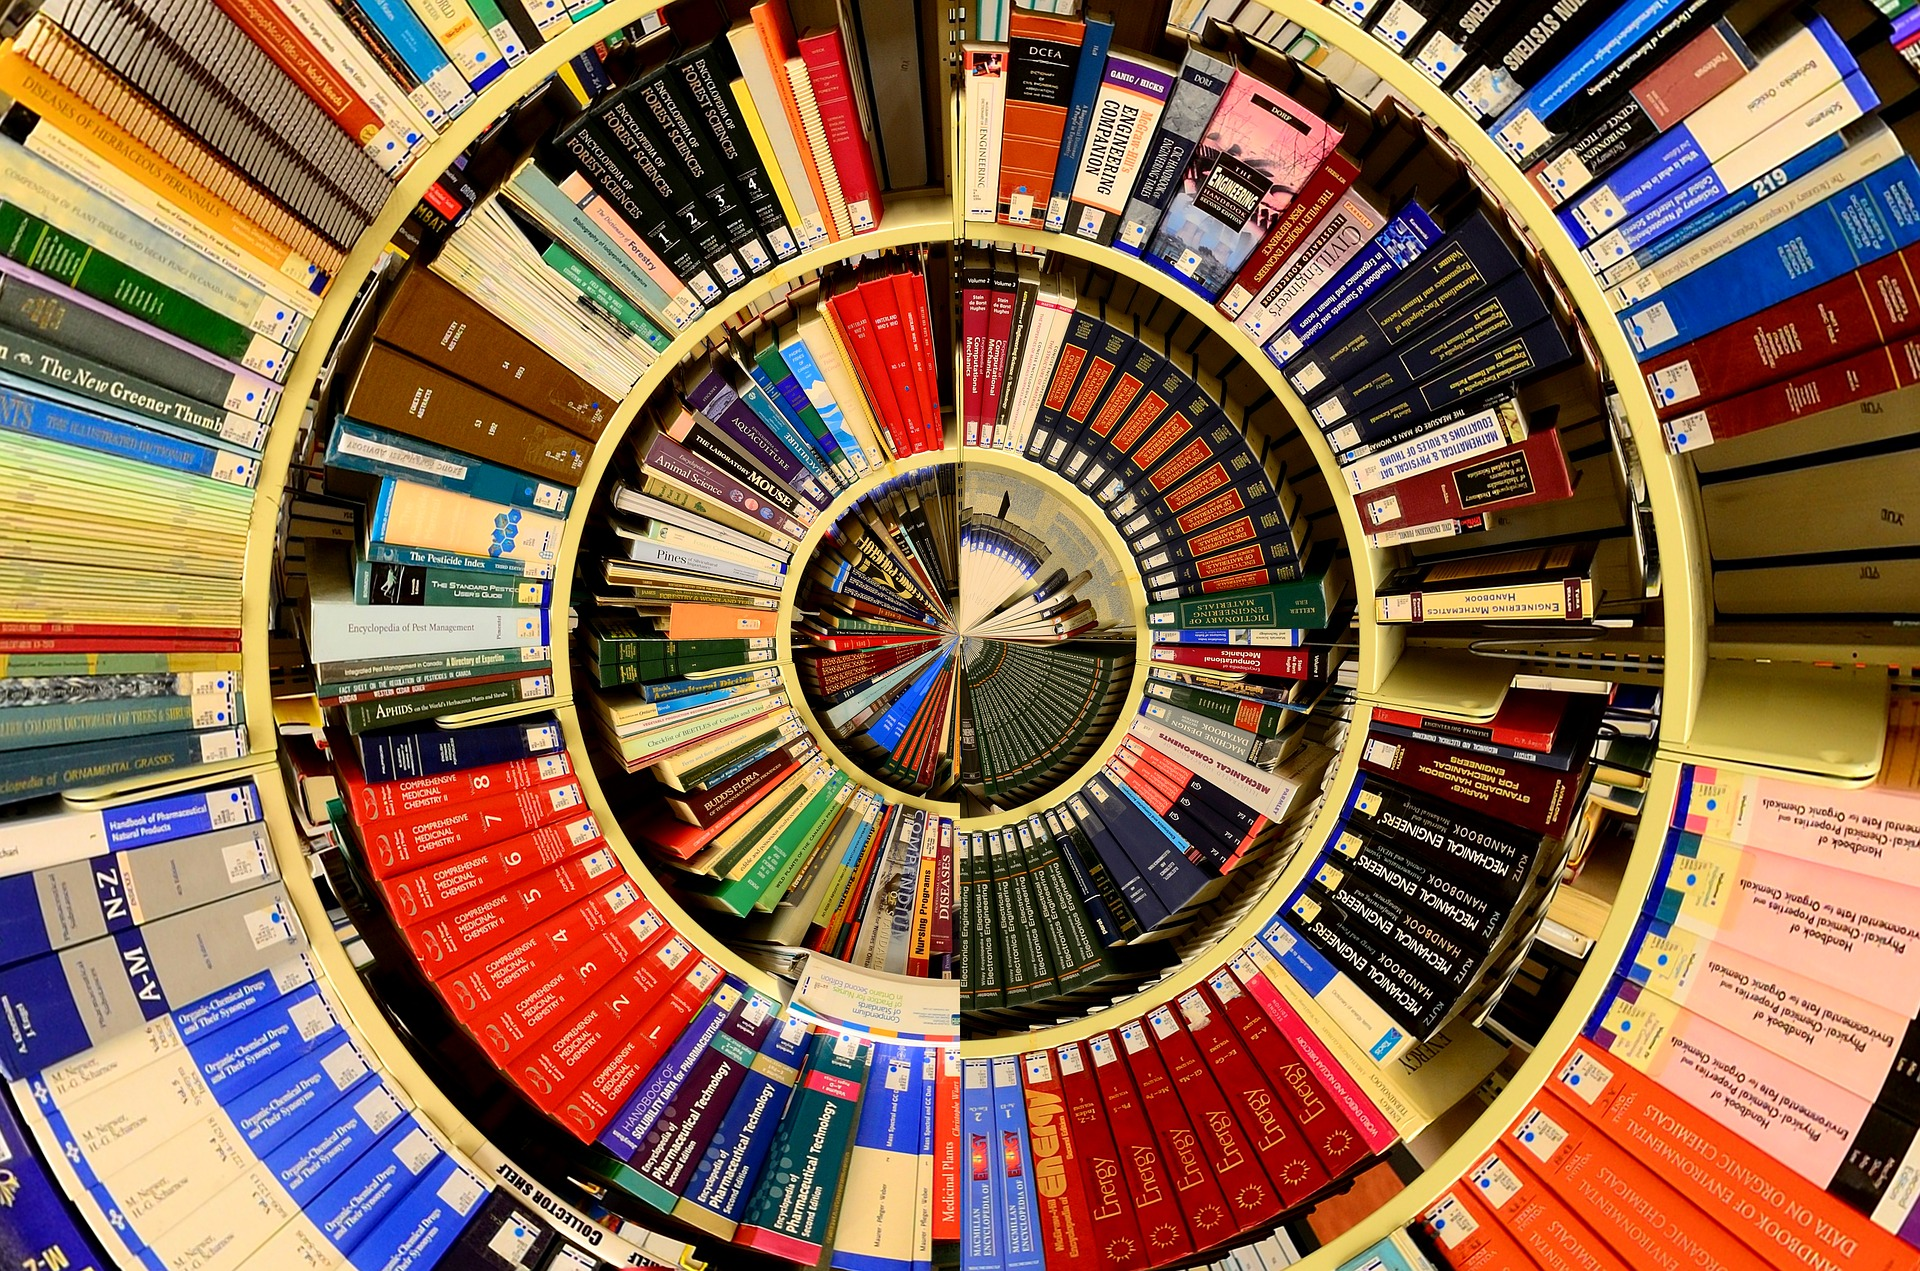 Best reads on cyber and information security